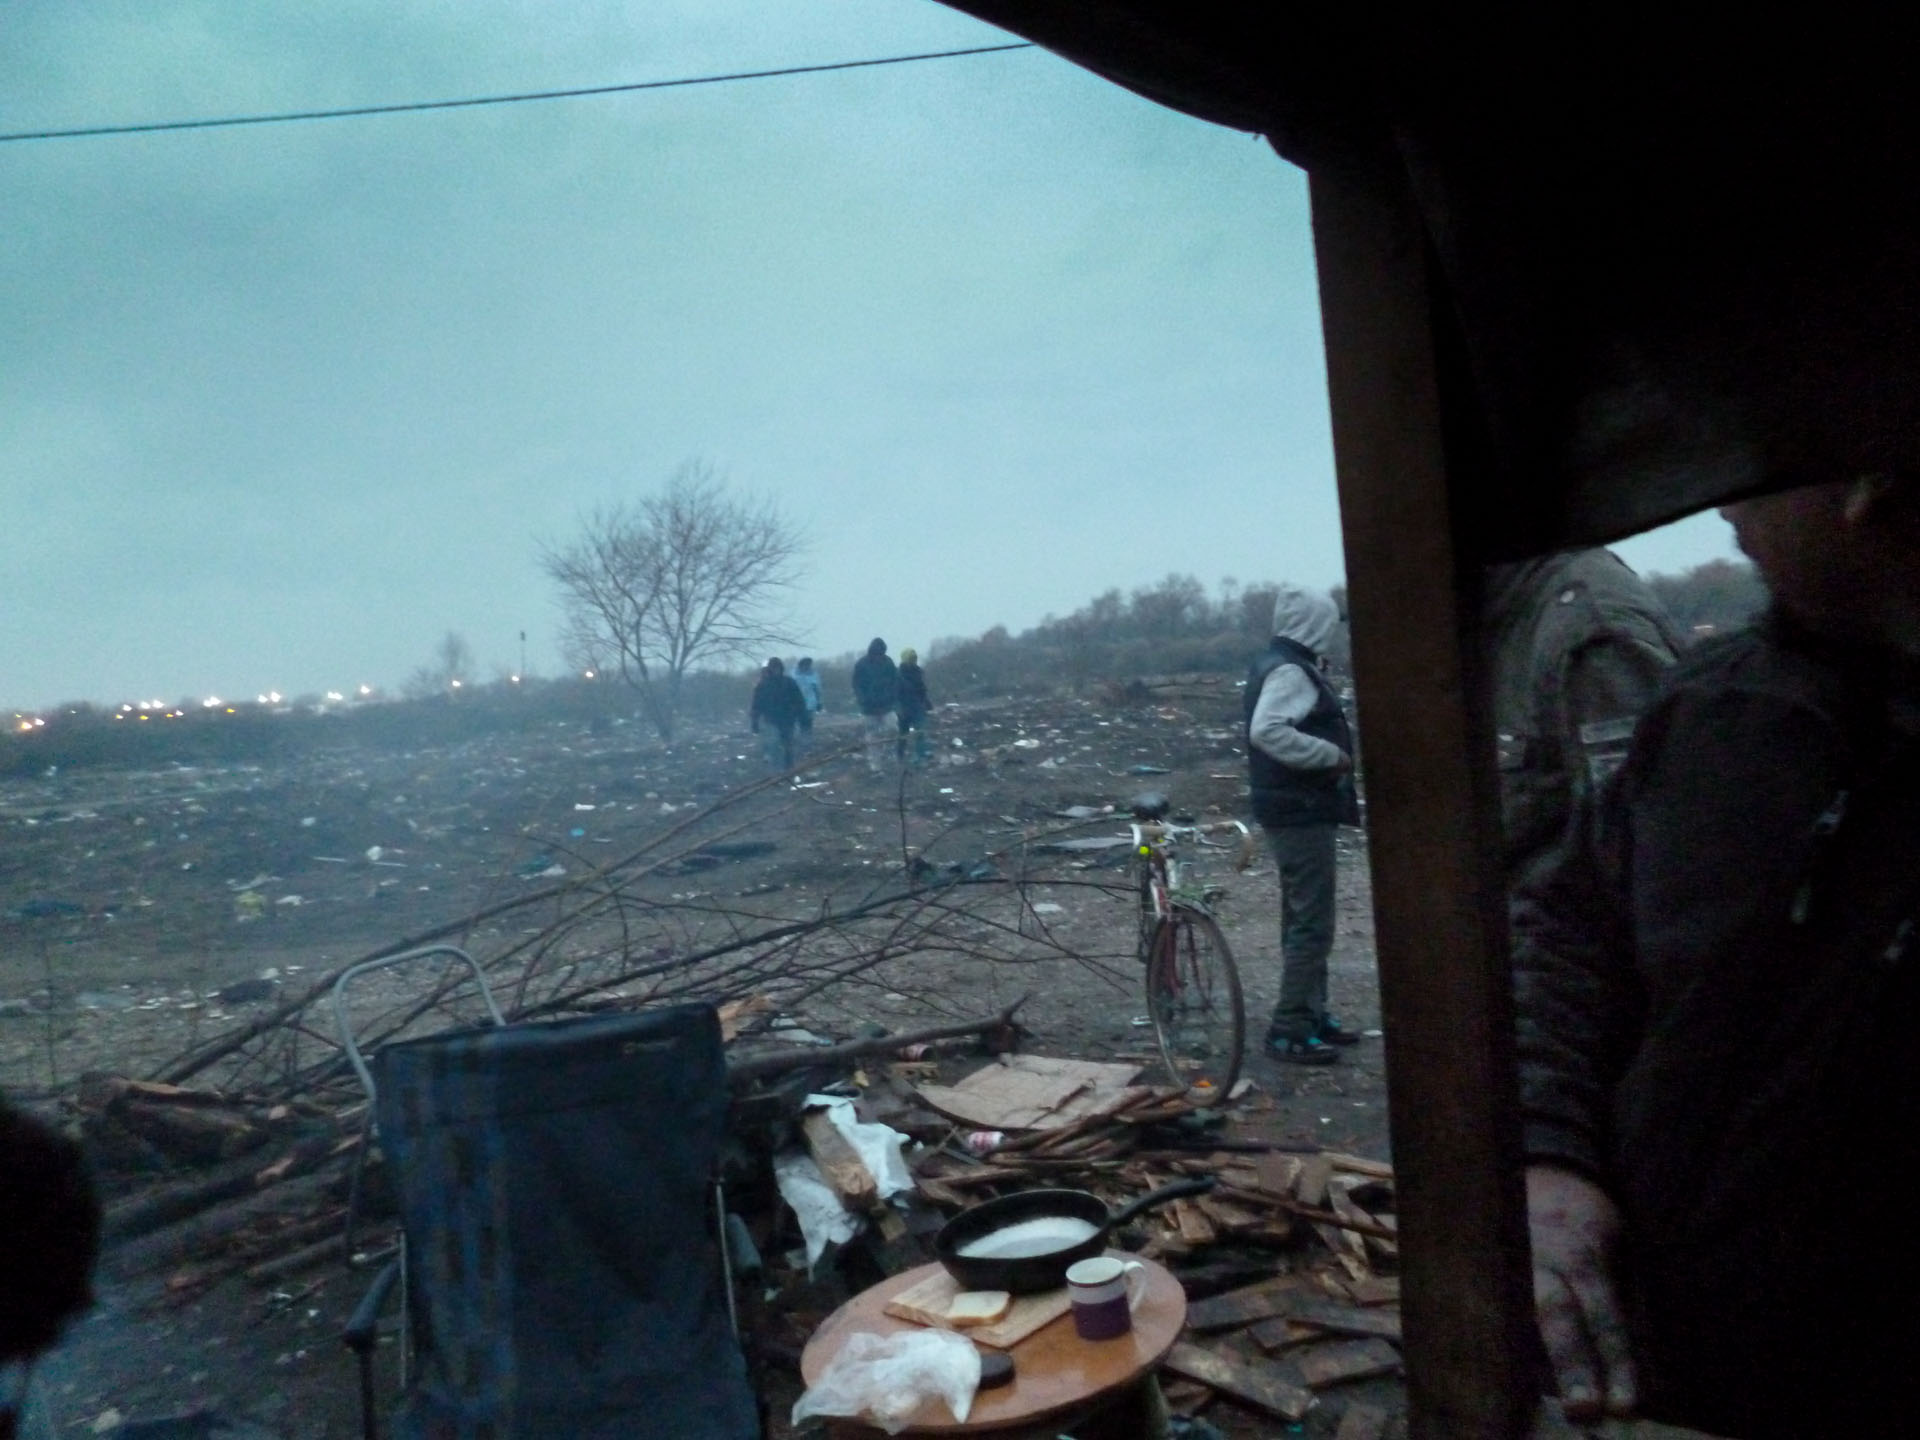 Calais 'Jungle' photographed by 18 year old refugee Esyas ( name changed).